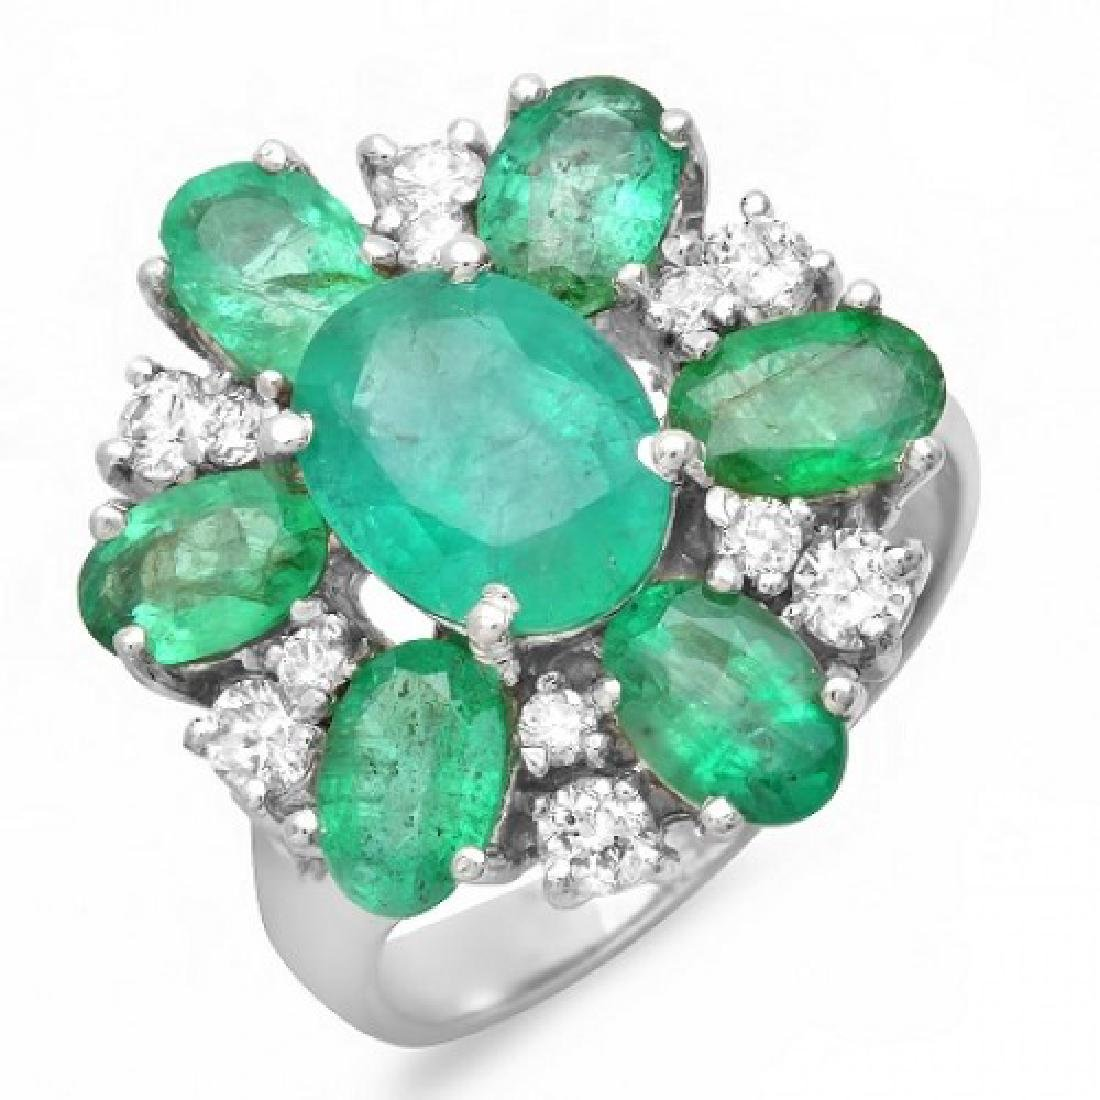 4.36 Carat Natural Emerald 18K Solid White Gold Diamond